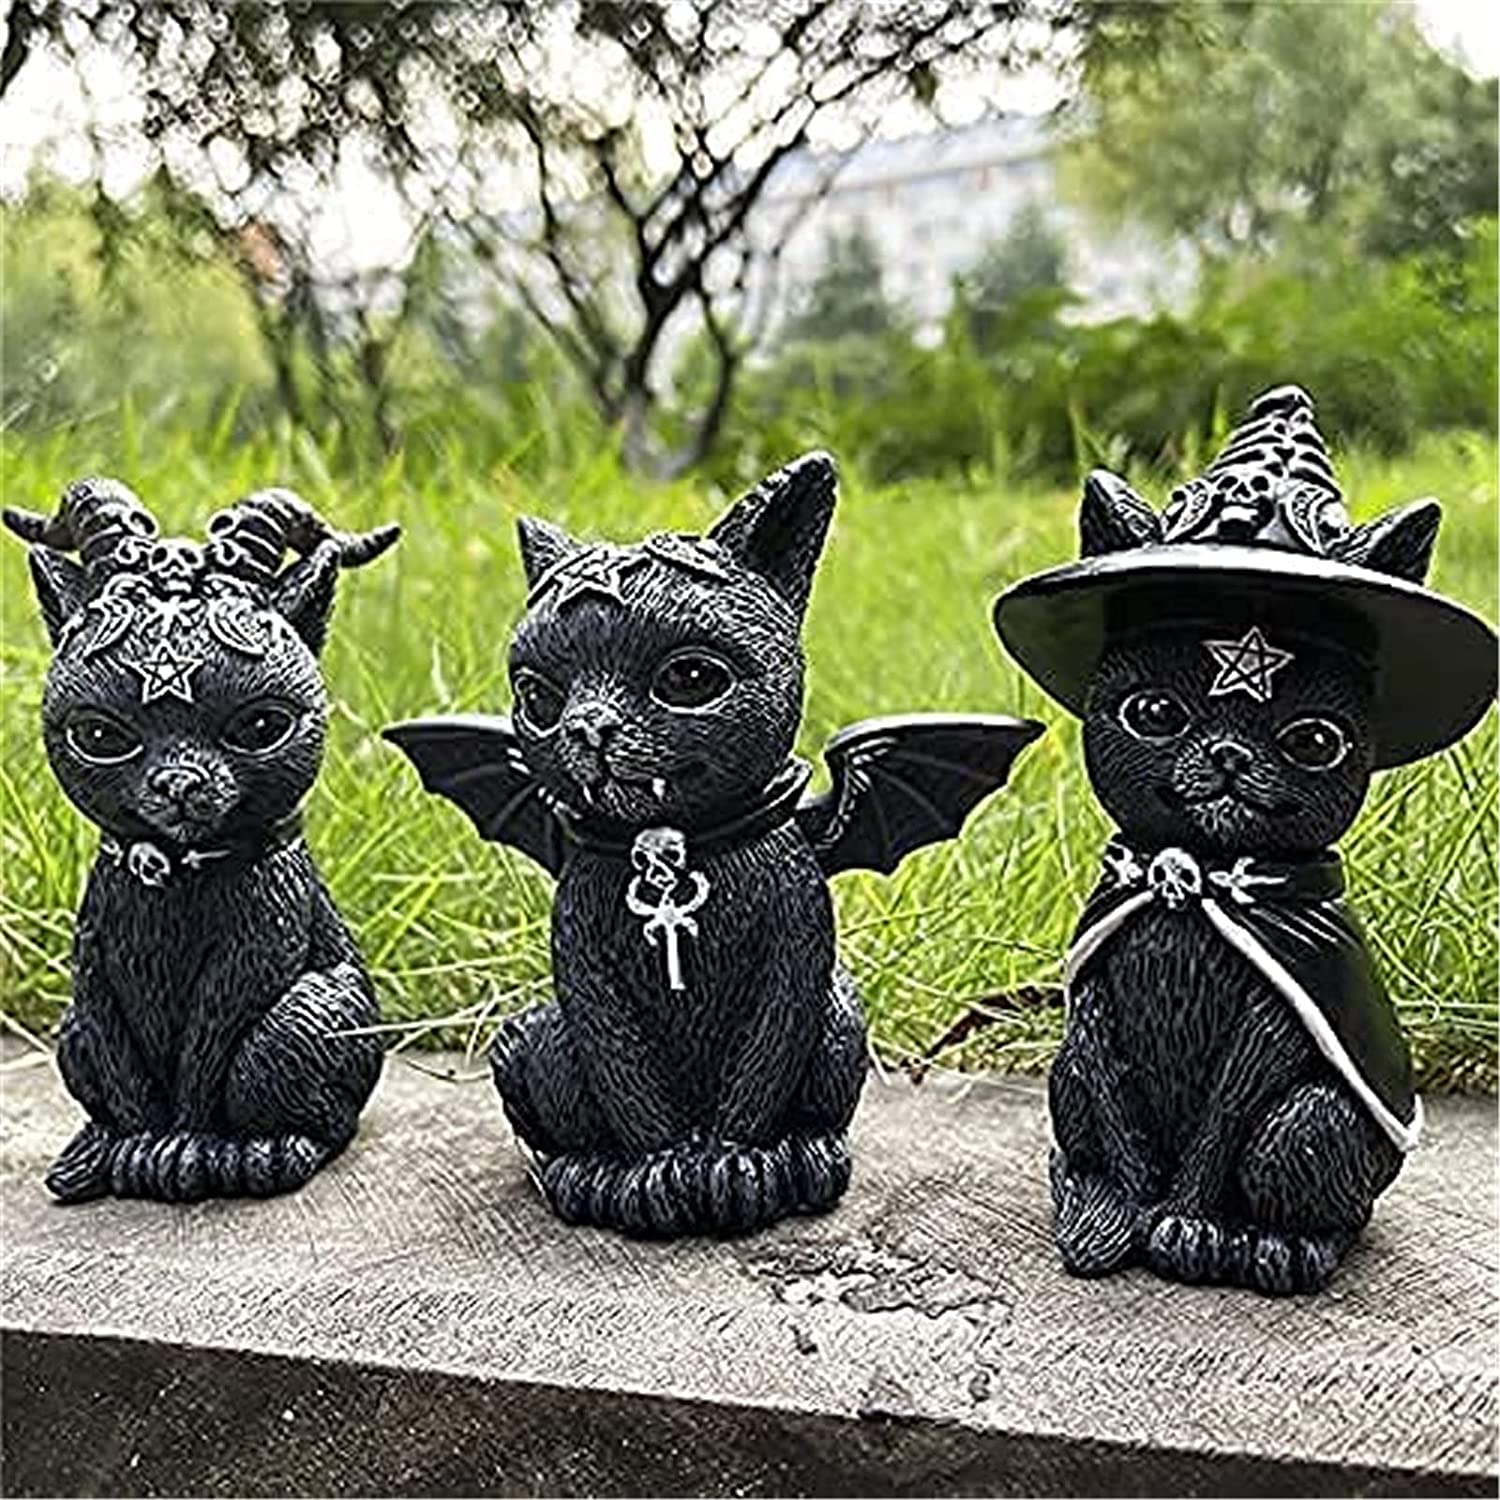 Ranking TOP18 Witch's shopping Cat Sculpture Cute Black Gnome Halloween